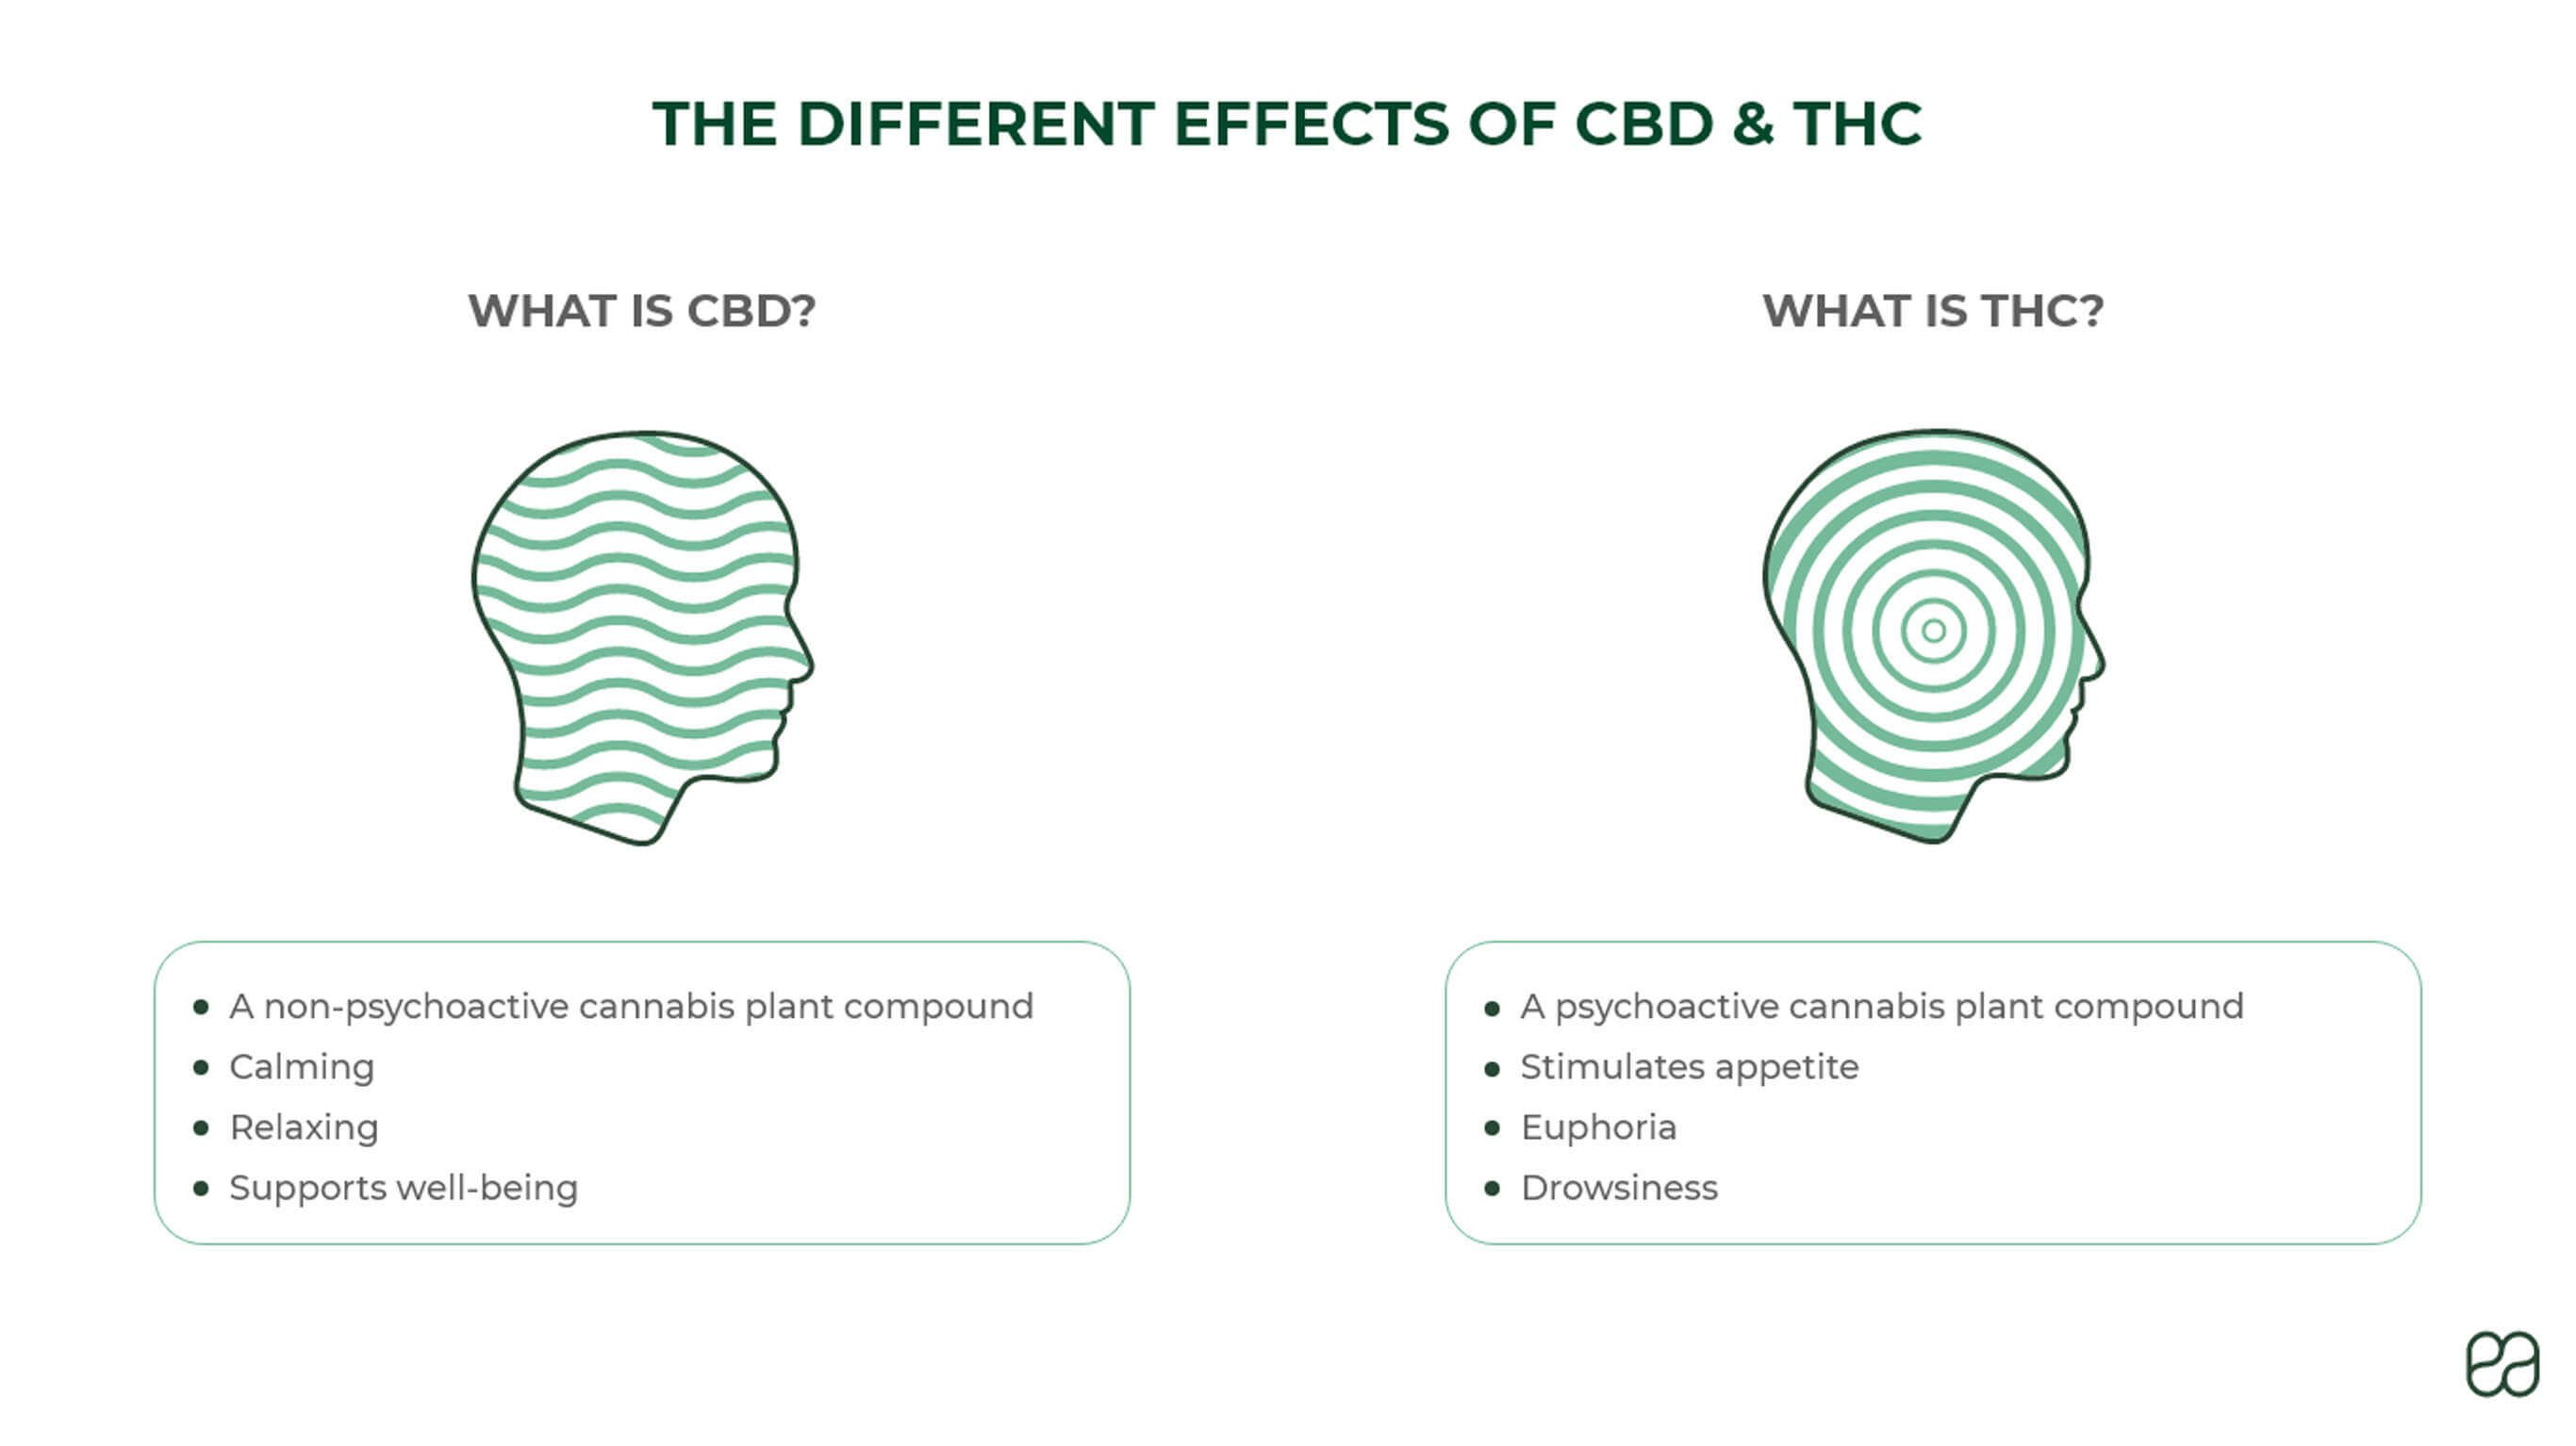 THC vs CBD: CBD is non-psychoactive and is relaxing. THC is psychoactive, increases appetite, causes euphoria & drowsiness